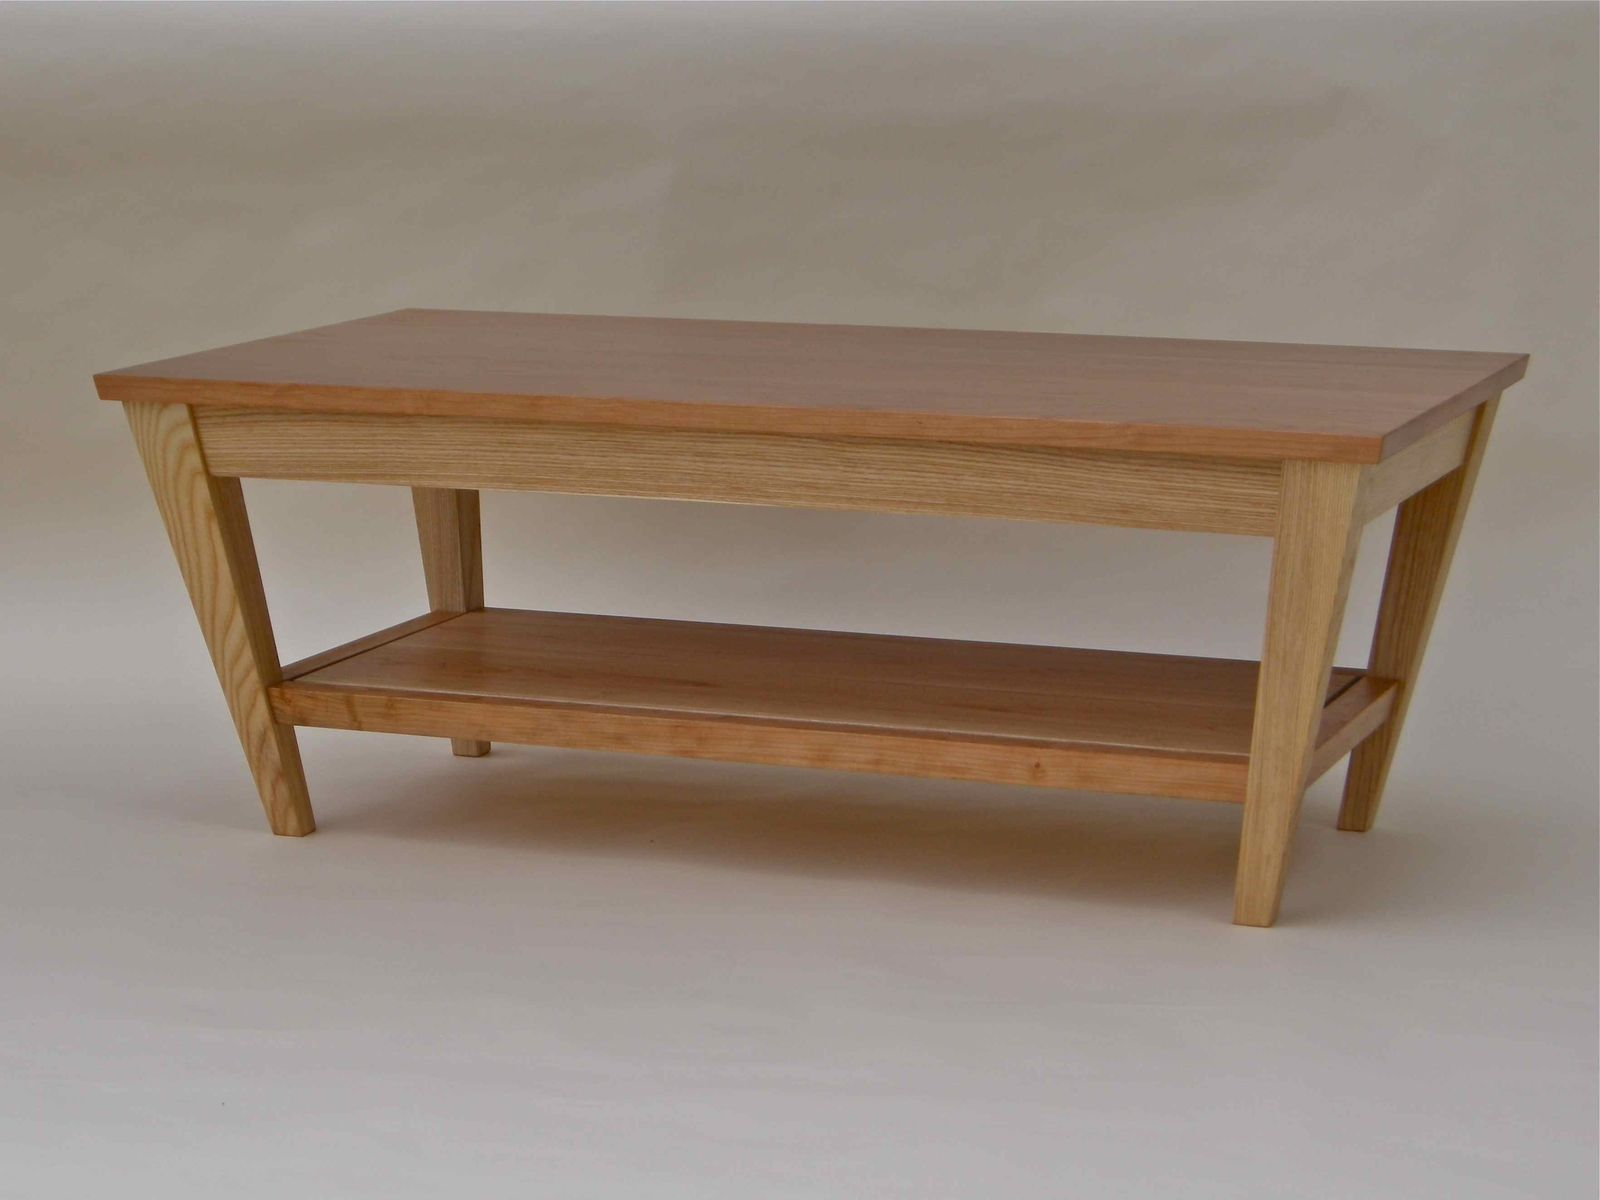 Custom Made Cherry + Ash Coffee Table by Corwin